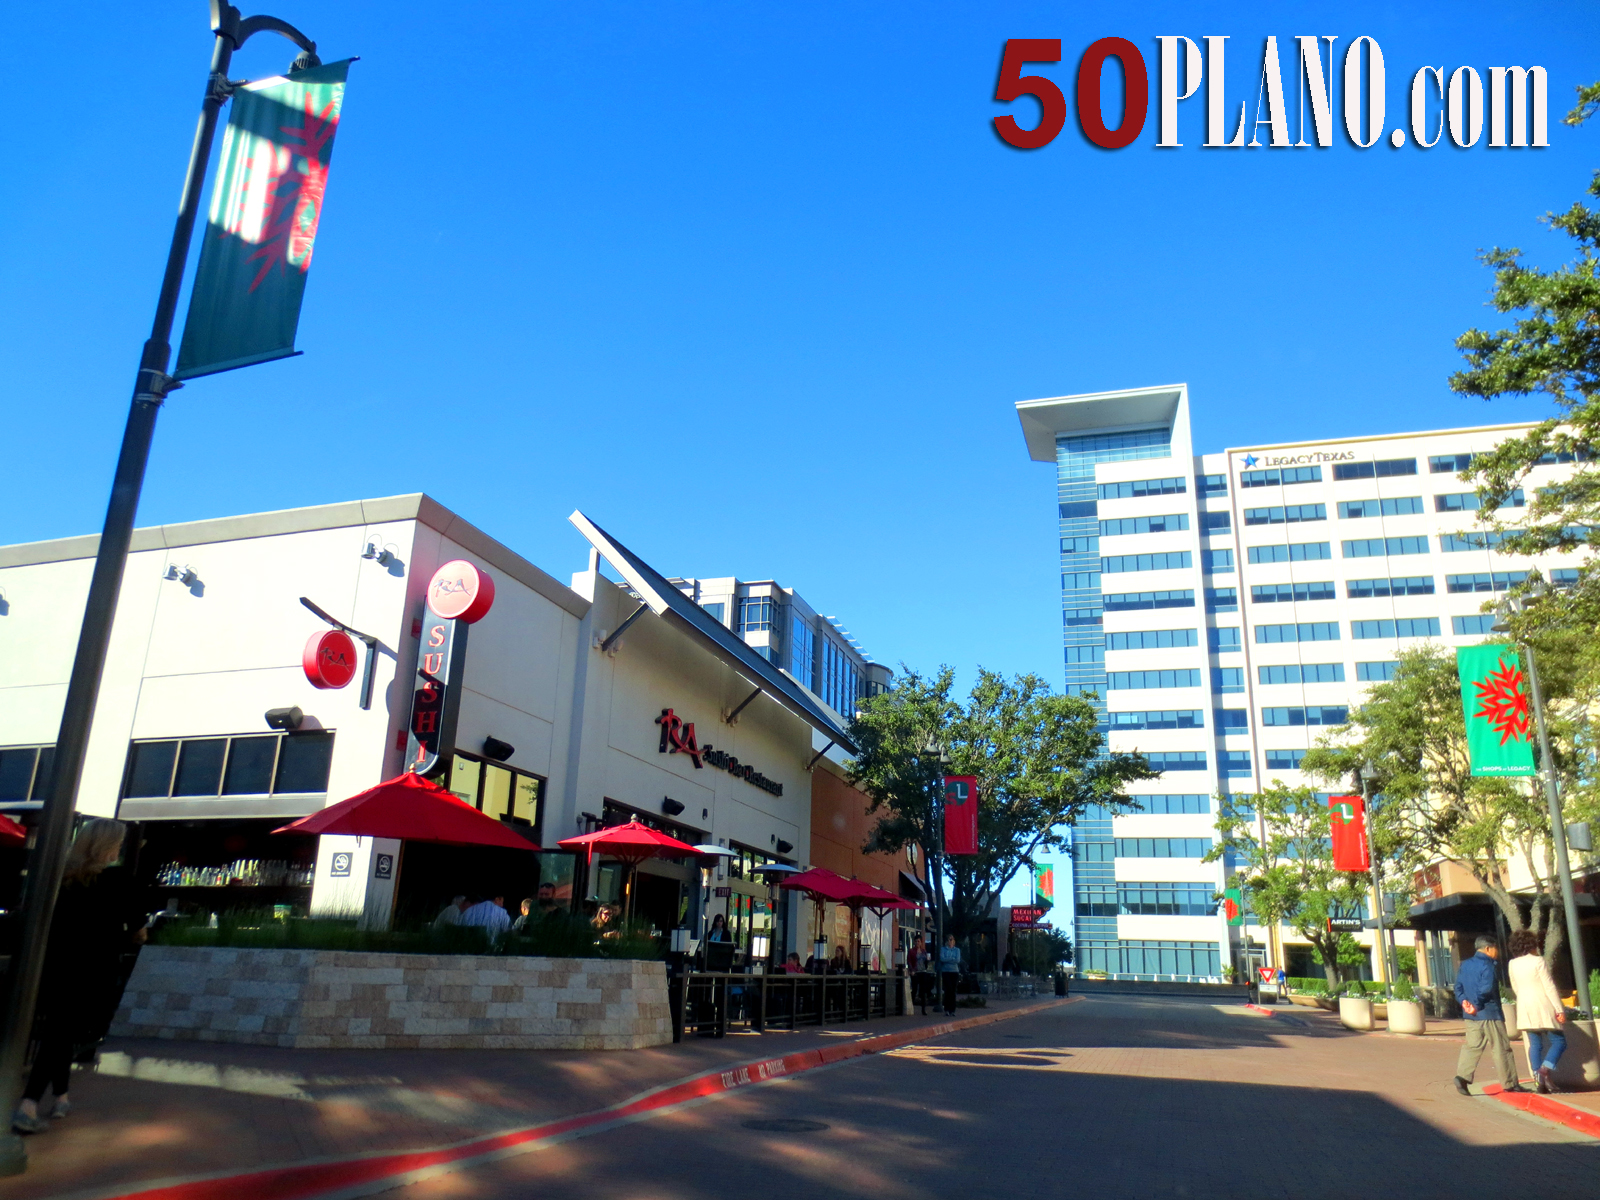 Shops at Legacy Embo s the Affluence and Charity of Plano – 50